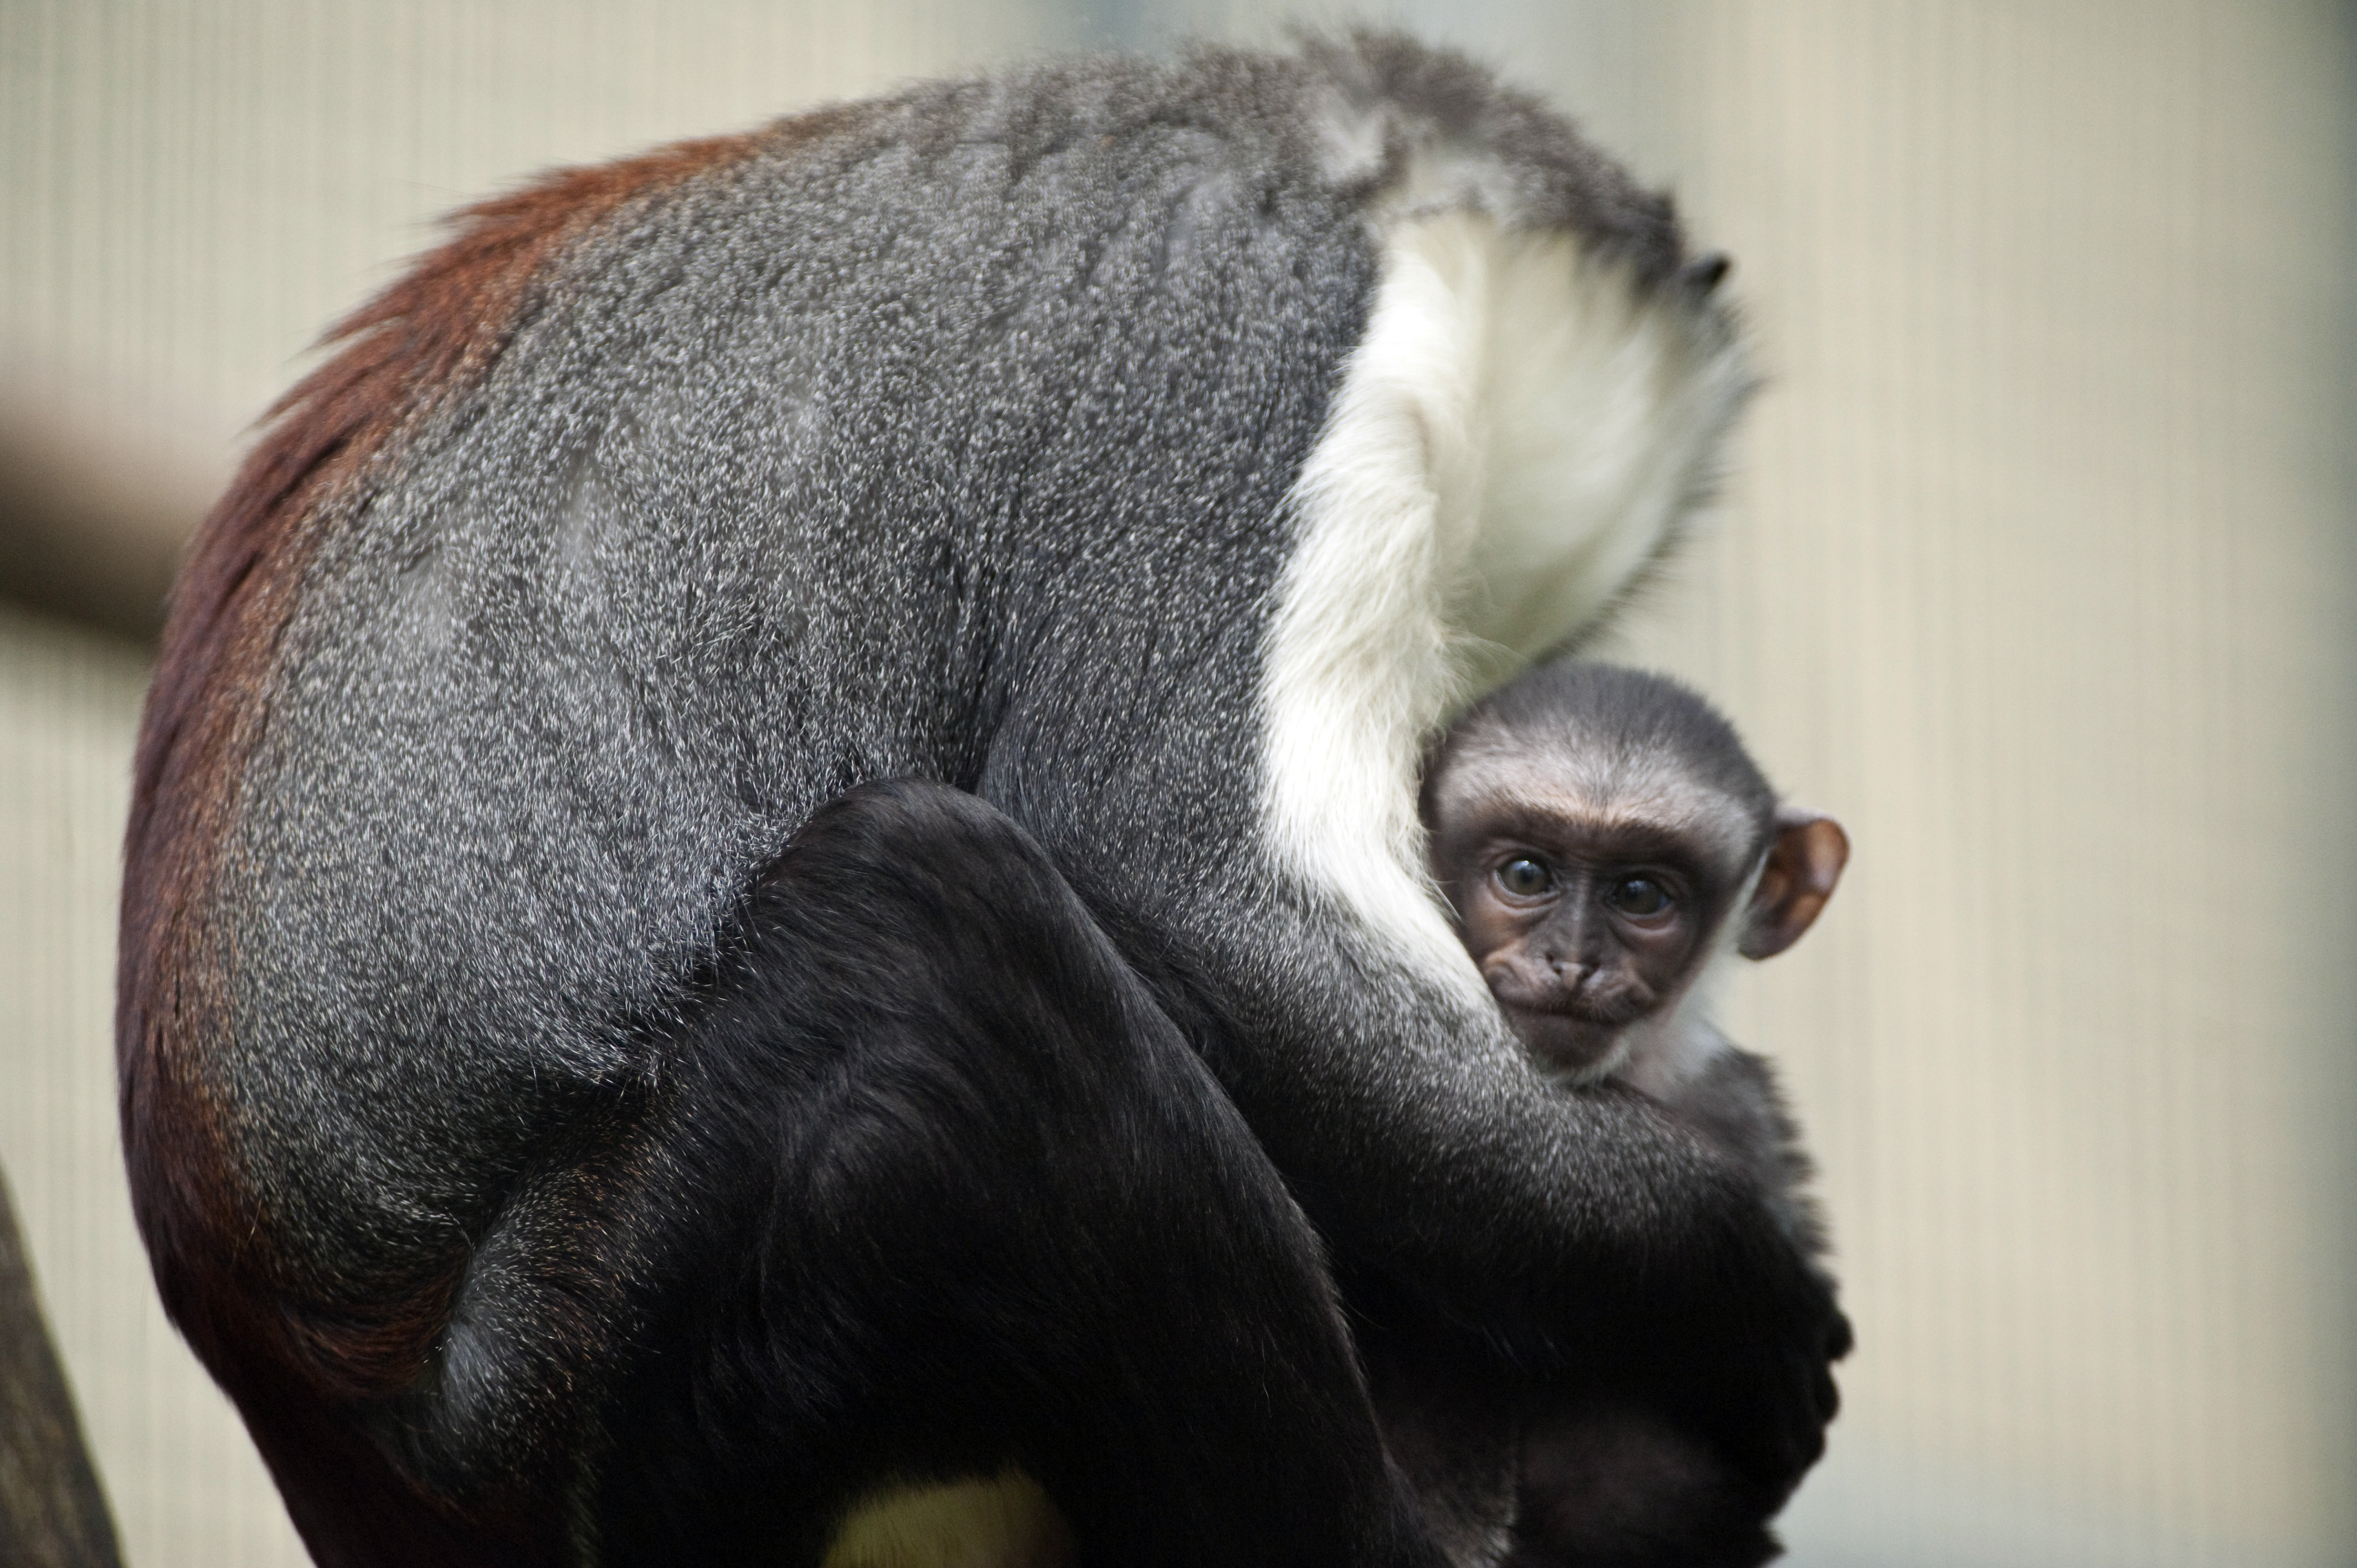 They may be one of the 25 most endangered primate species in the world, but this Roloway monkey appears awfully safe and snug with his mama.